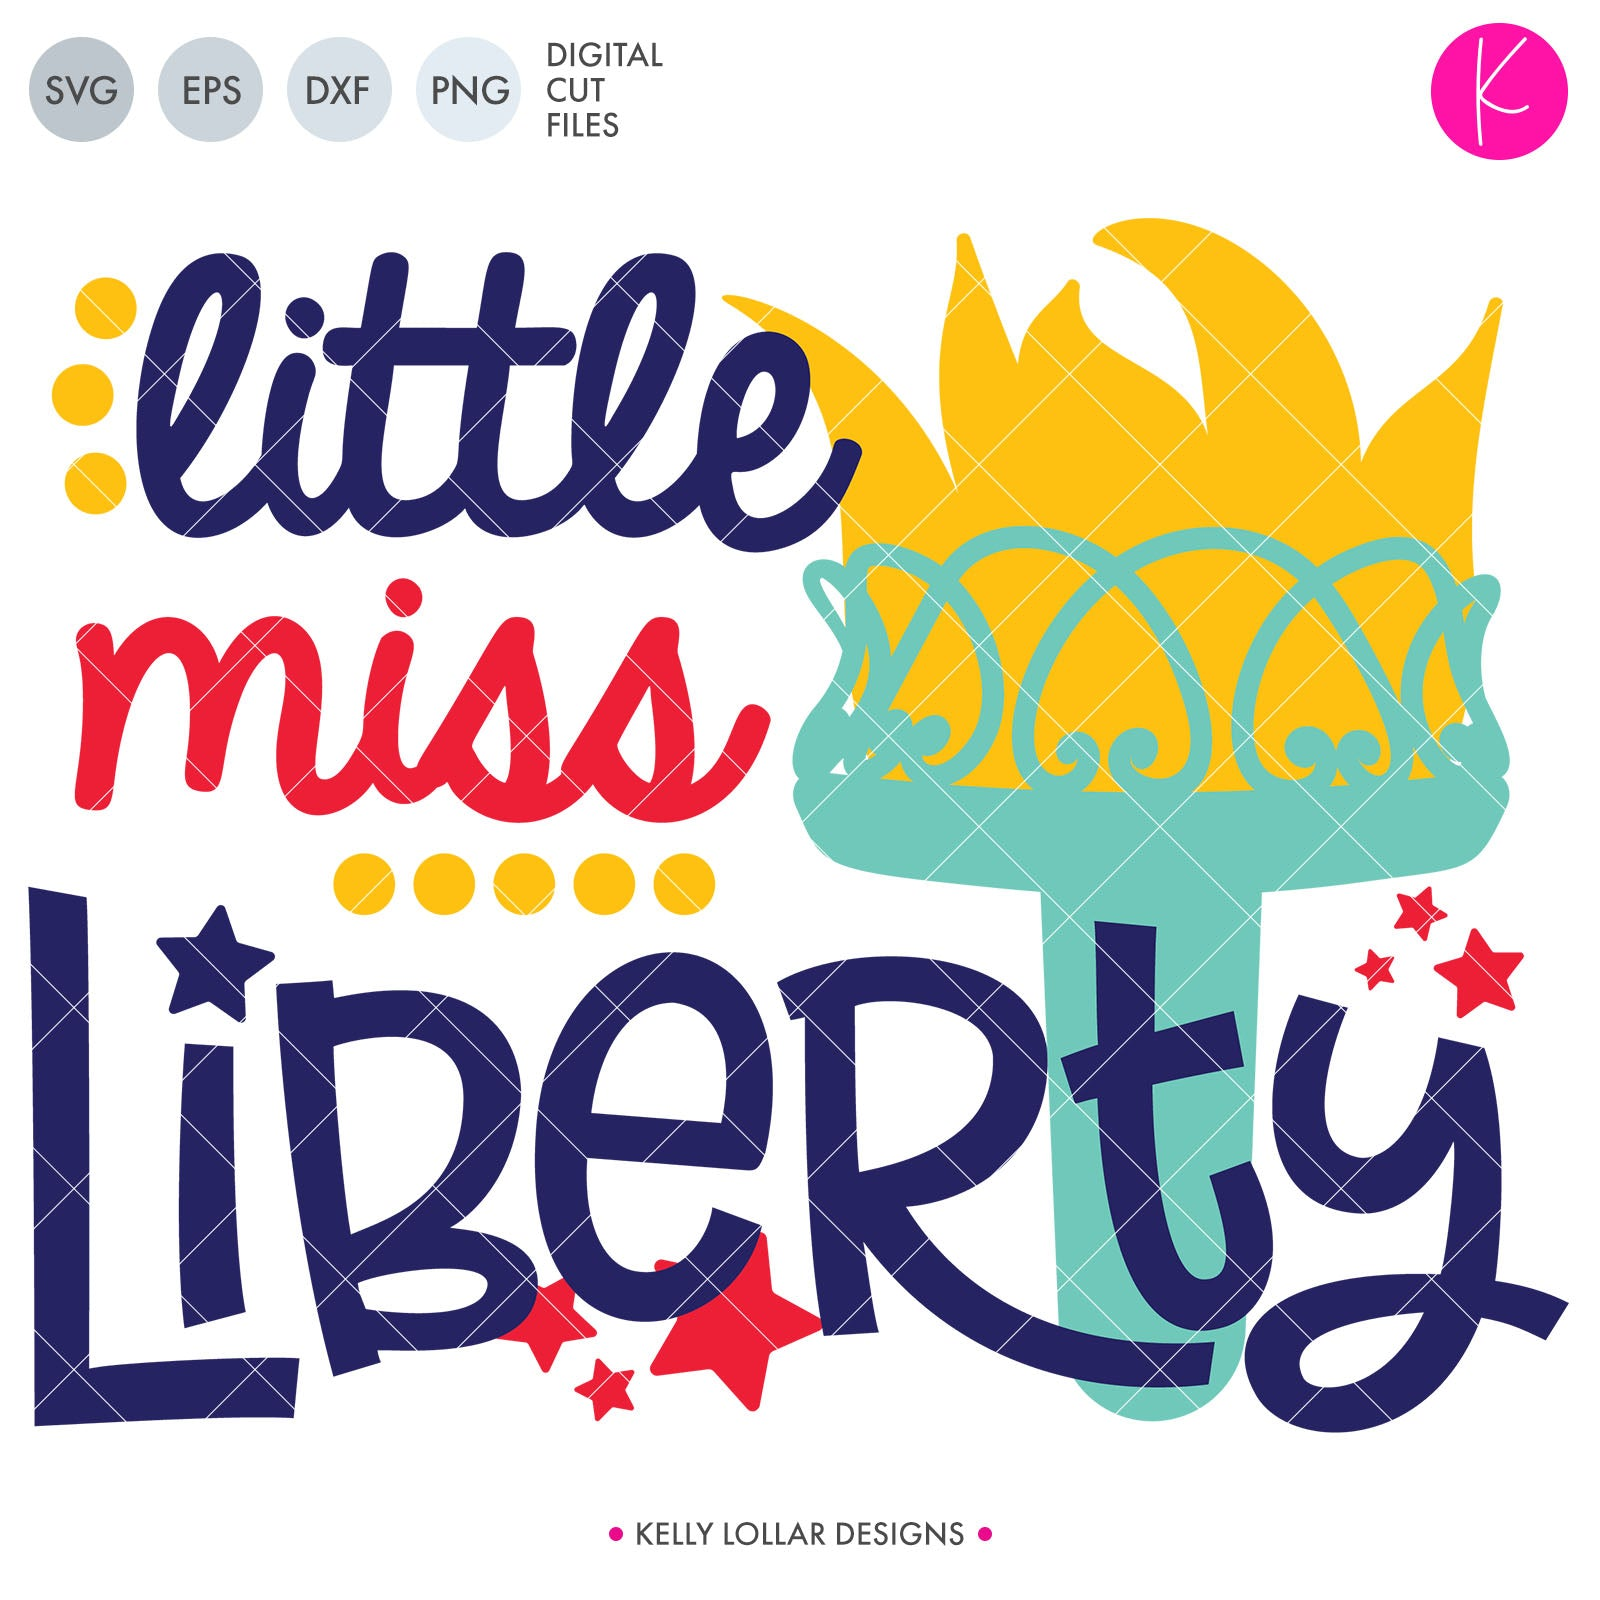 Little Miss Liberty svg - Girl's 4th of July Quote with Polka Dots, Stars and the Statue of Liberty's Torch for Shirts | SVG DXF PNG Cut Files